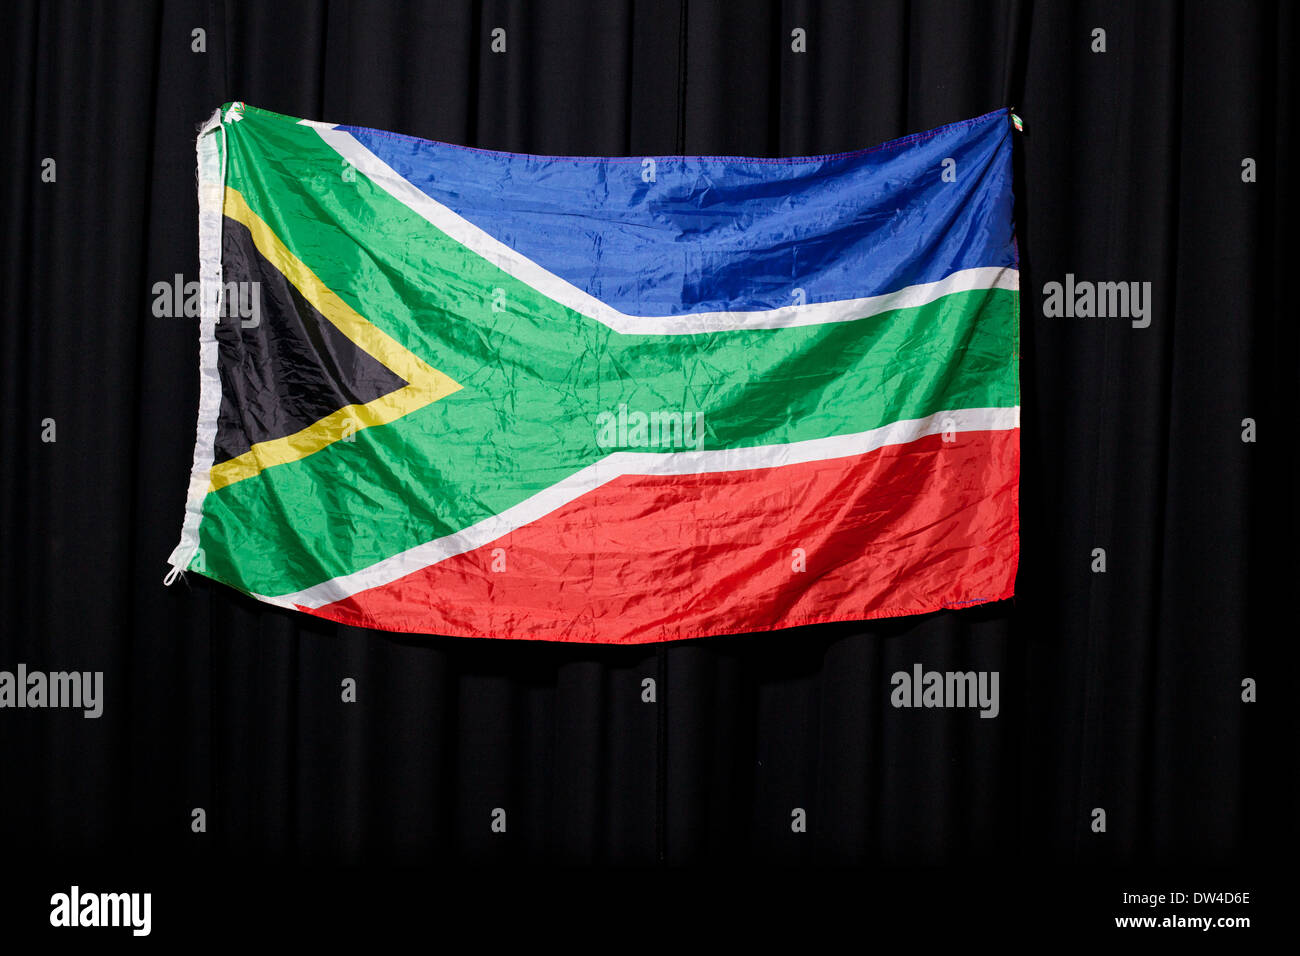 image of the South African flag on a black background - Stock Image